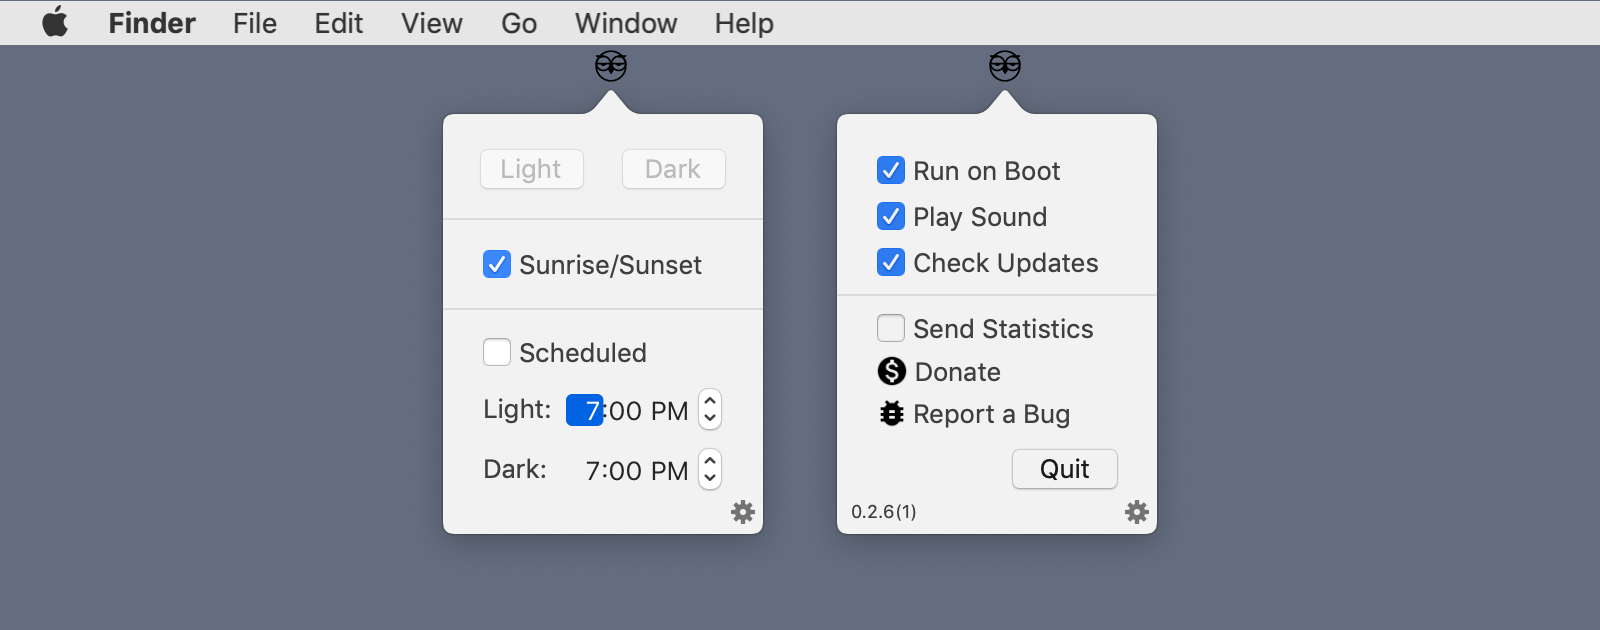 Get Automatic Dark Mode With NightOwl